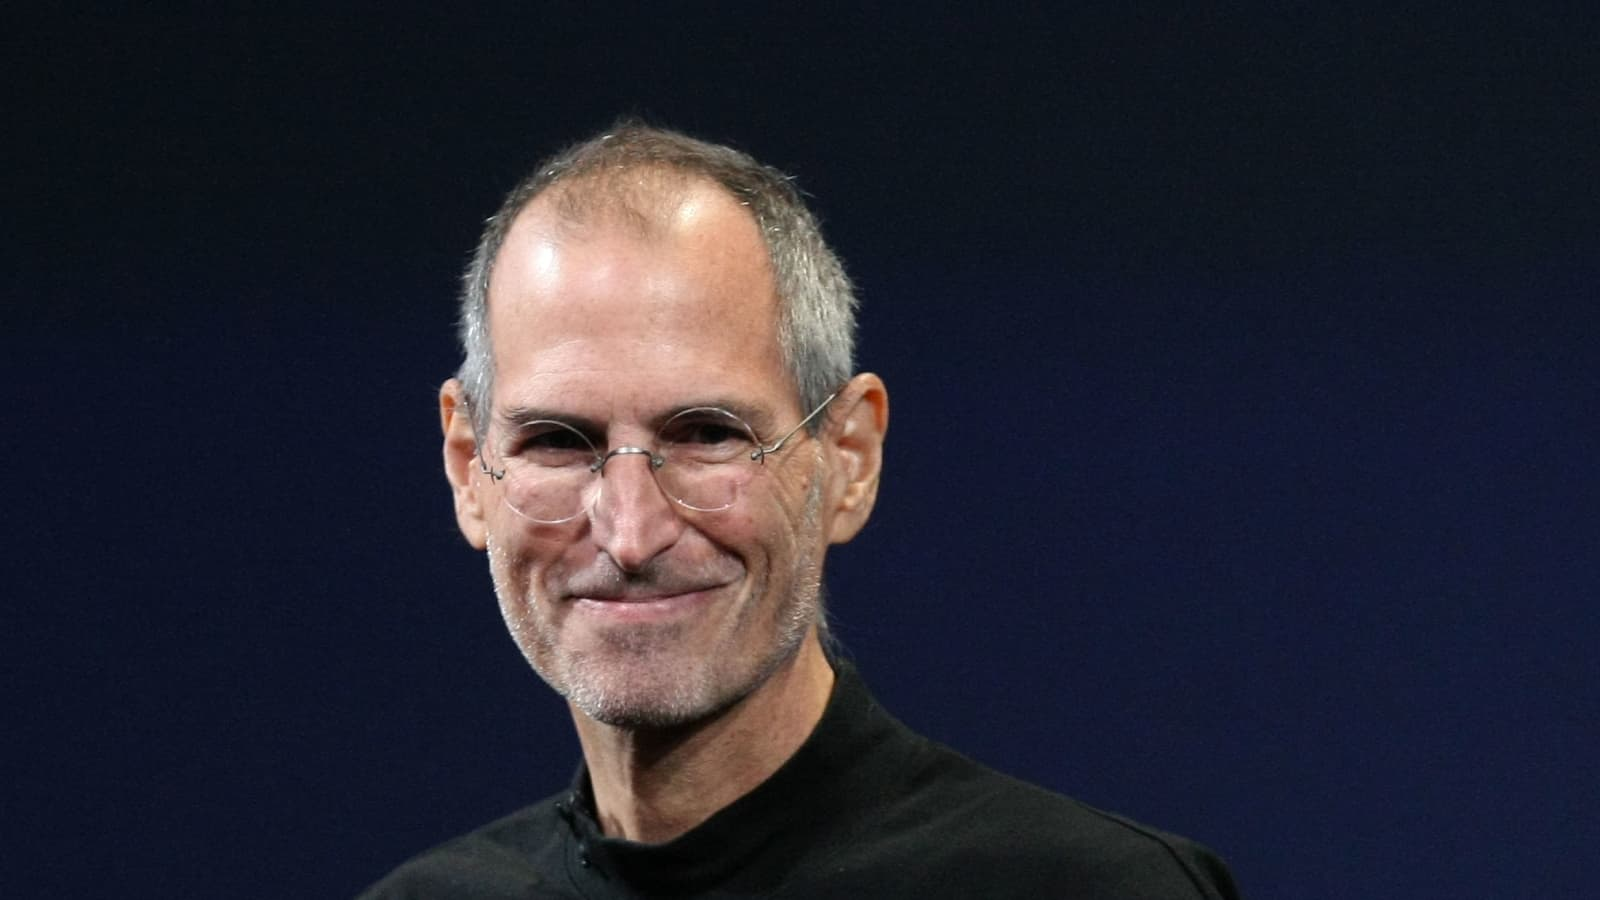 Steve Jobs: This is what it really takes to achieve great success